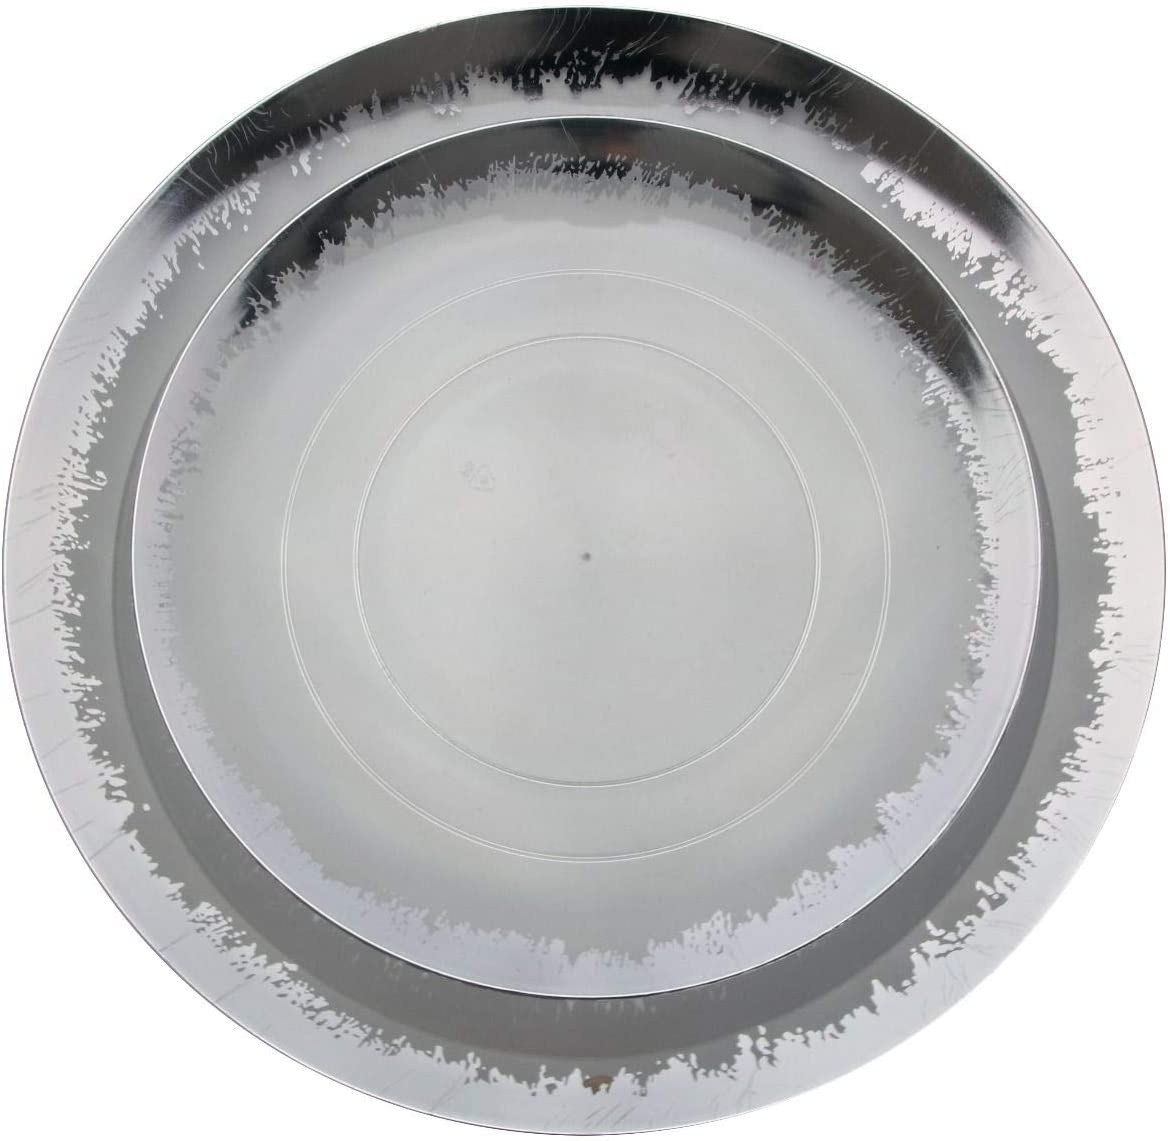 Trendables 60 Pack Combo Plastic Plates 10.25 - 30 inch. Max 57% OFF Houston Mall P Set